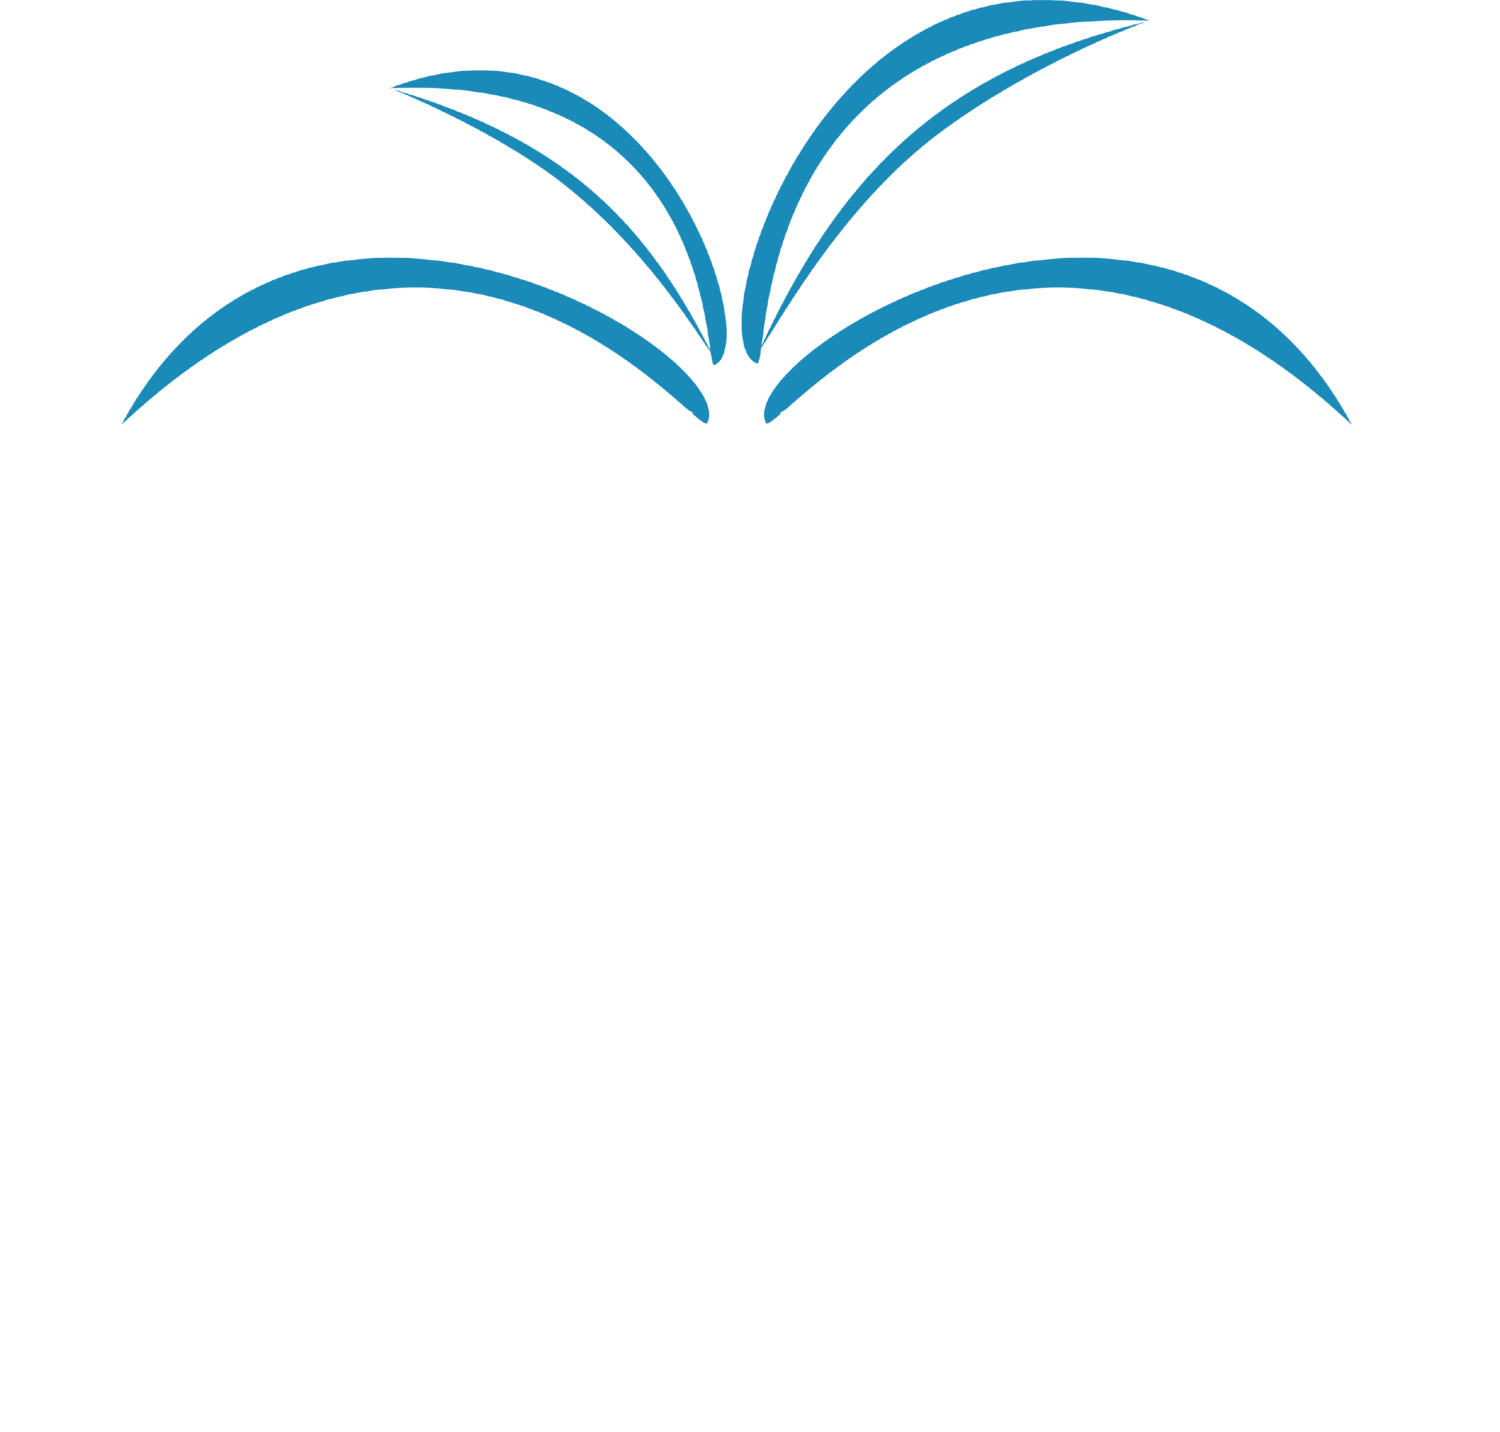 True Terrain Landscaping